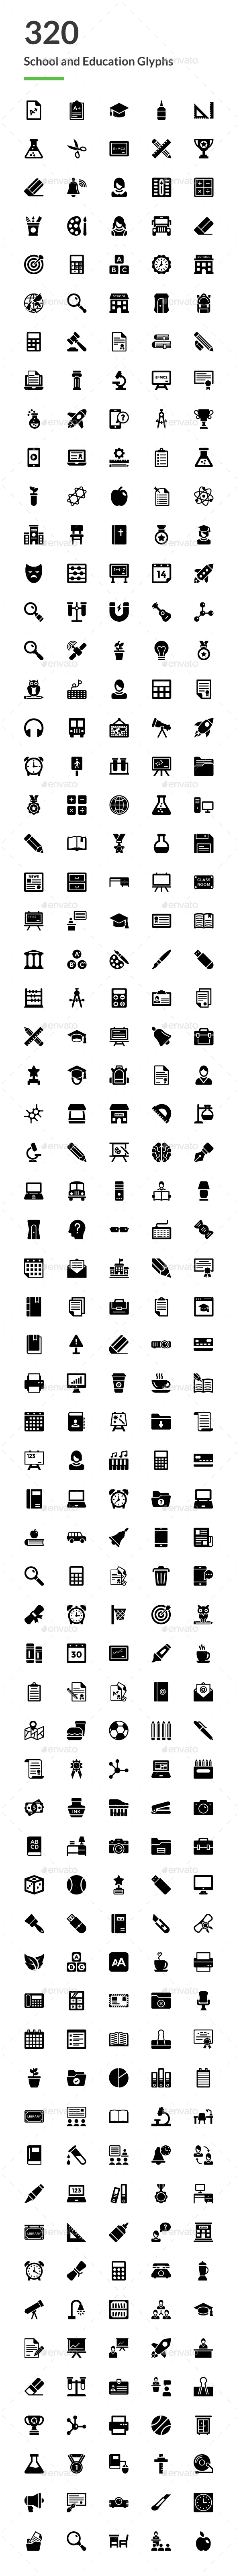 GraphicRiver 320 School and Education Glyph Icons 20751904